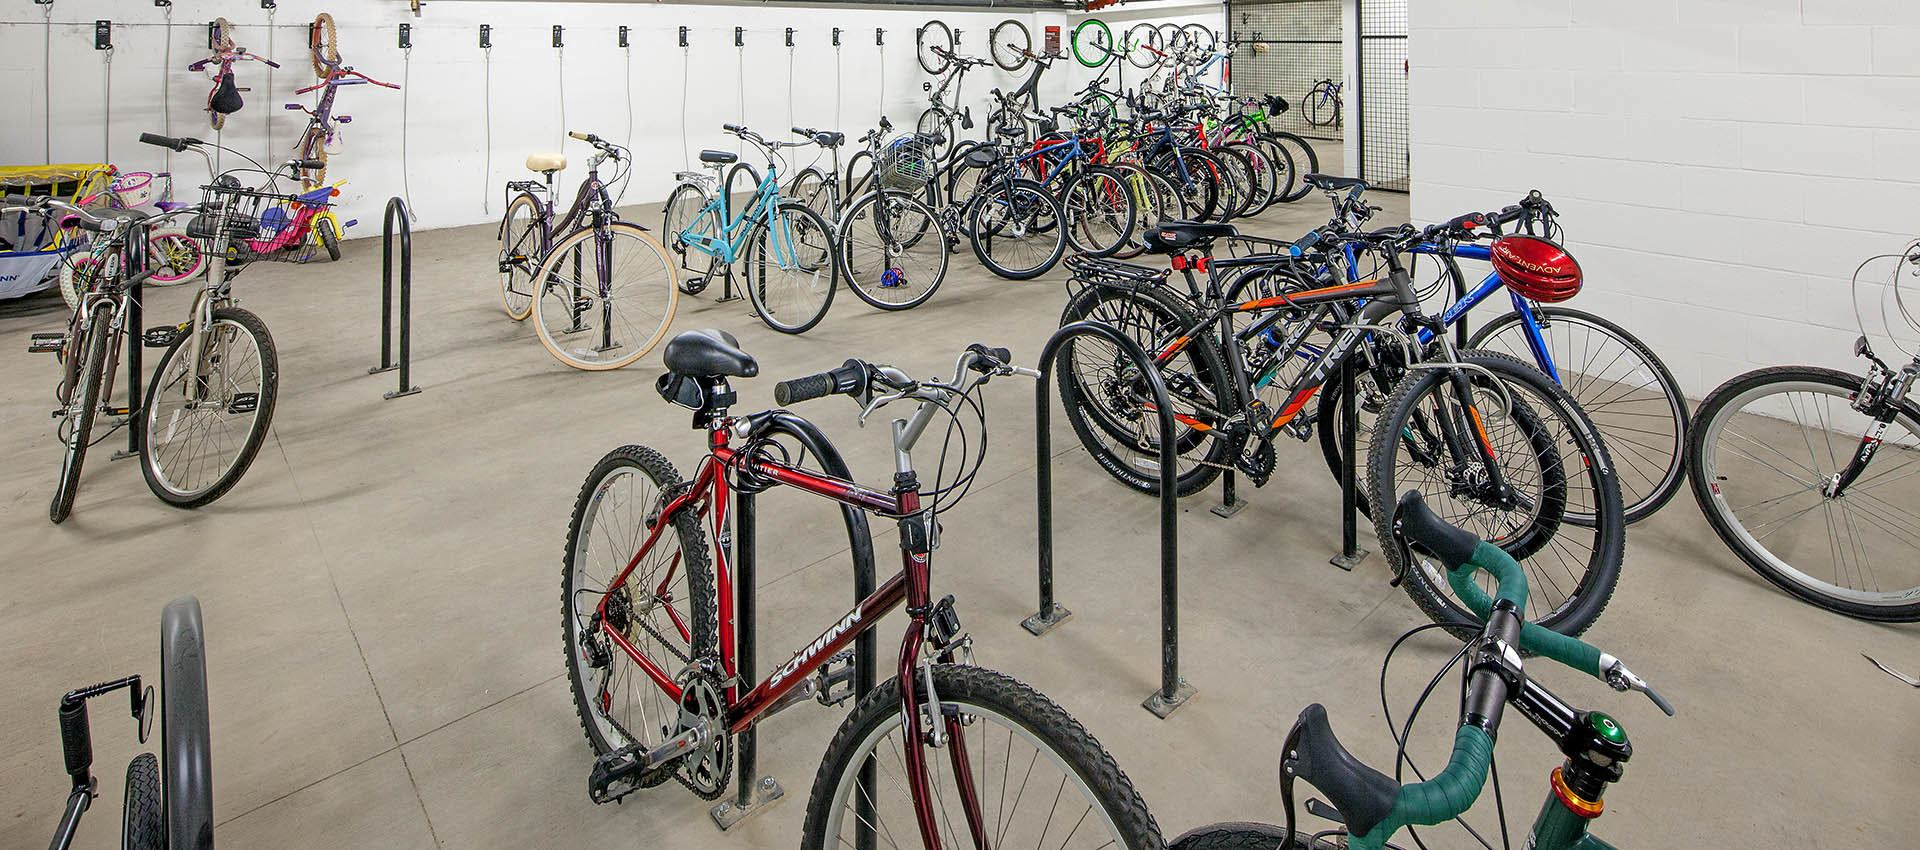 Bike Storage and Repair Shop at Eddyline at Bridgeport in Portland, Oregon